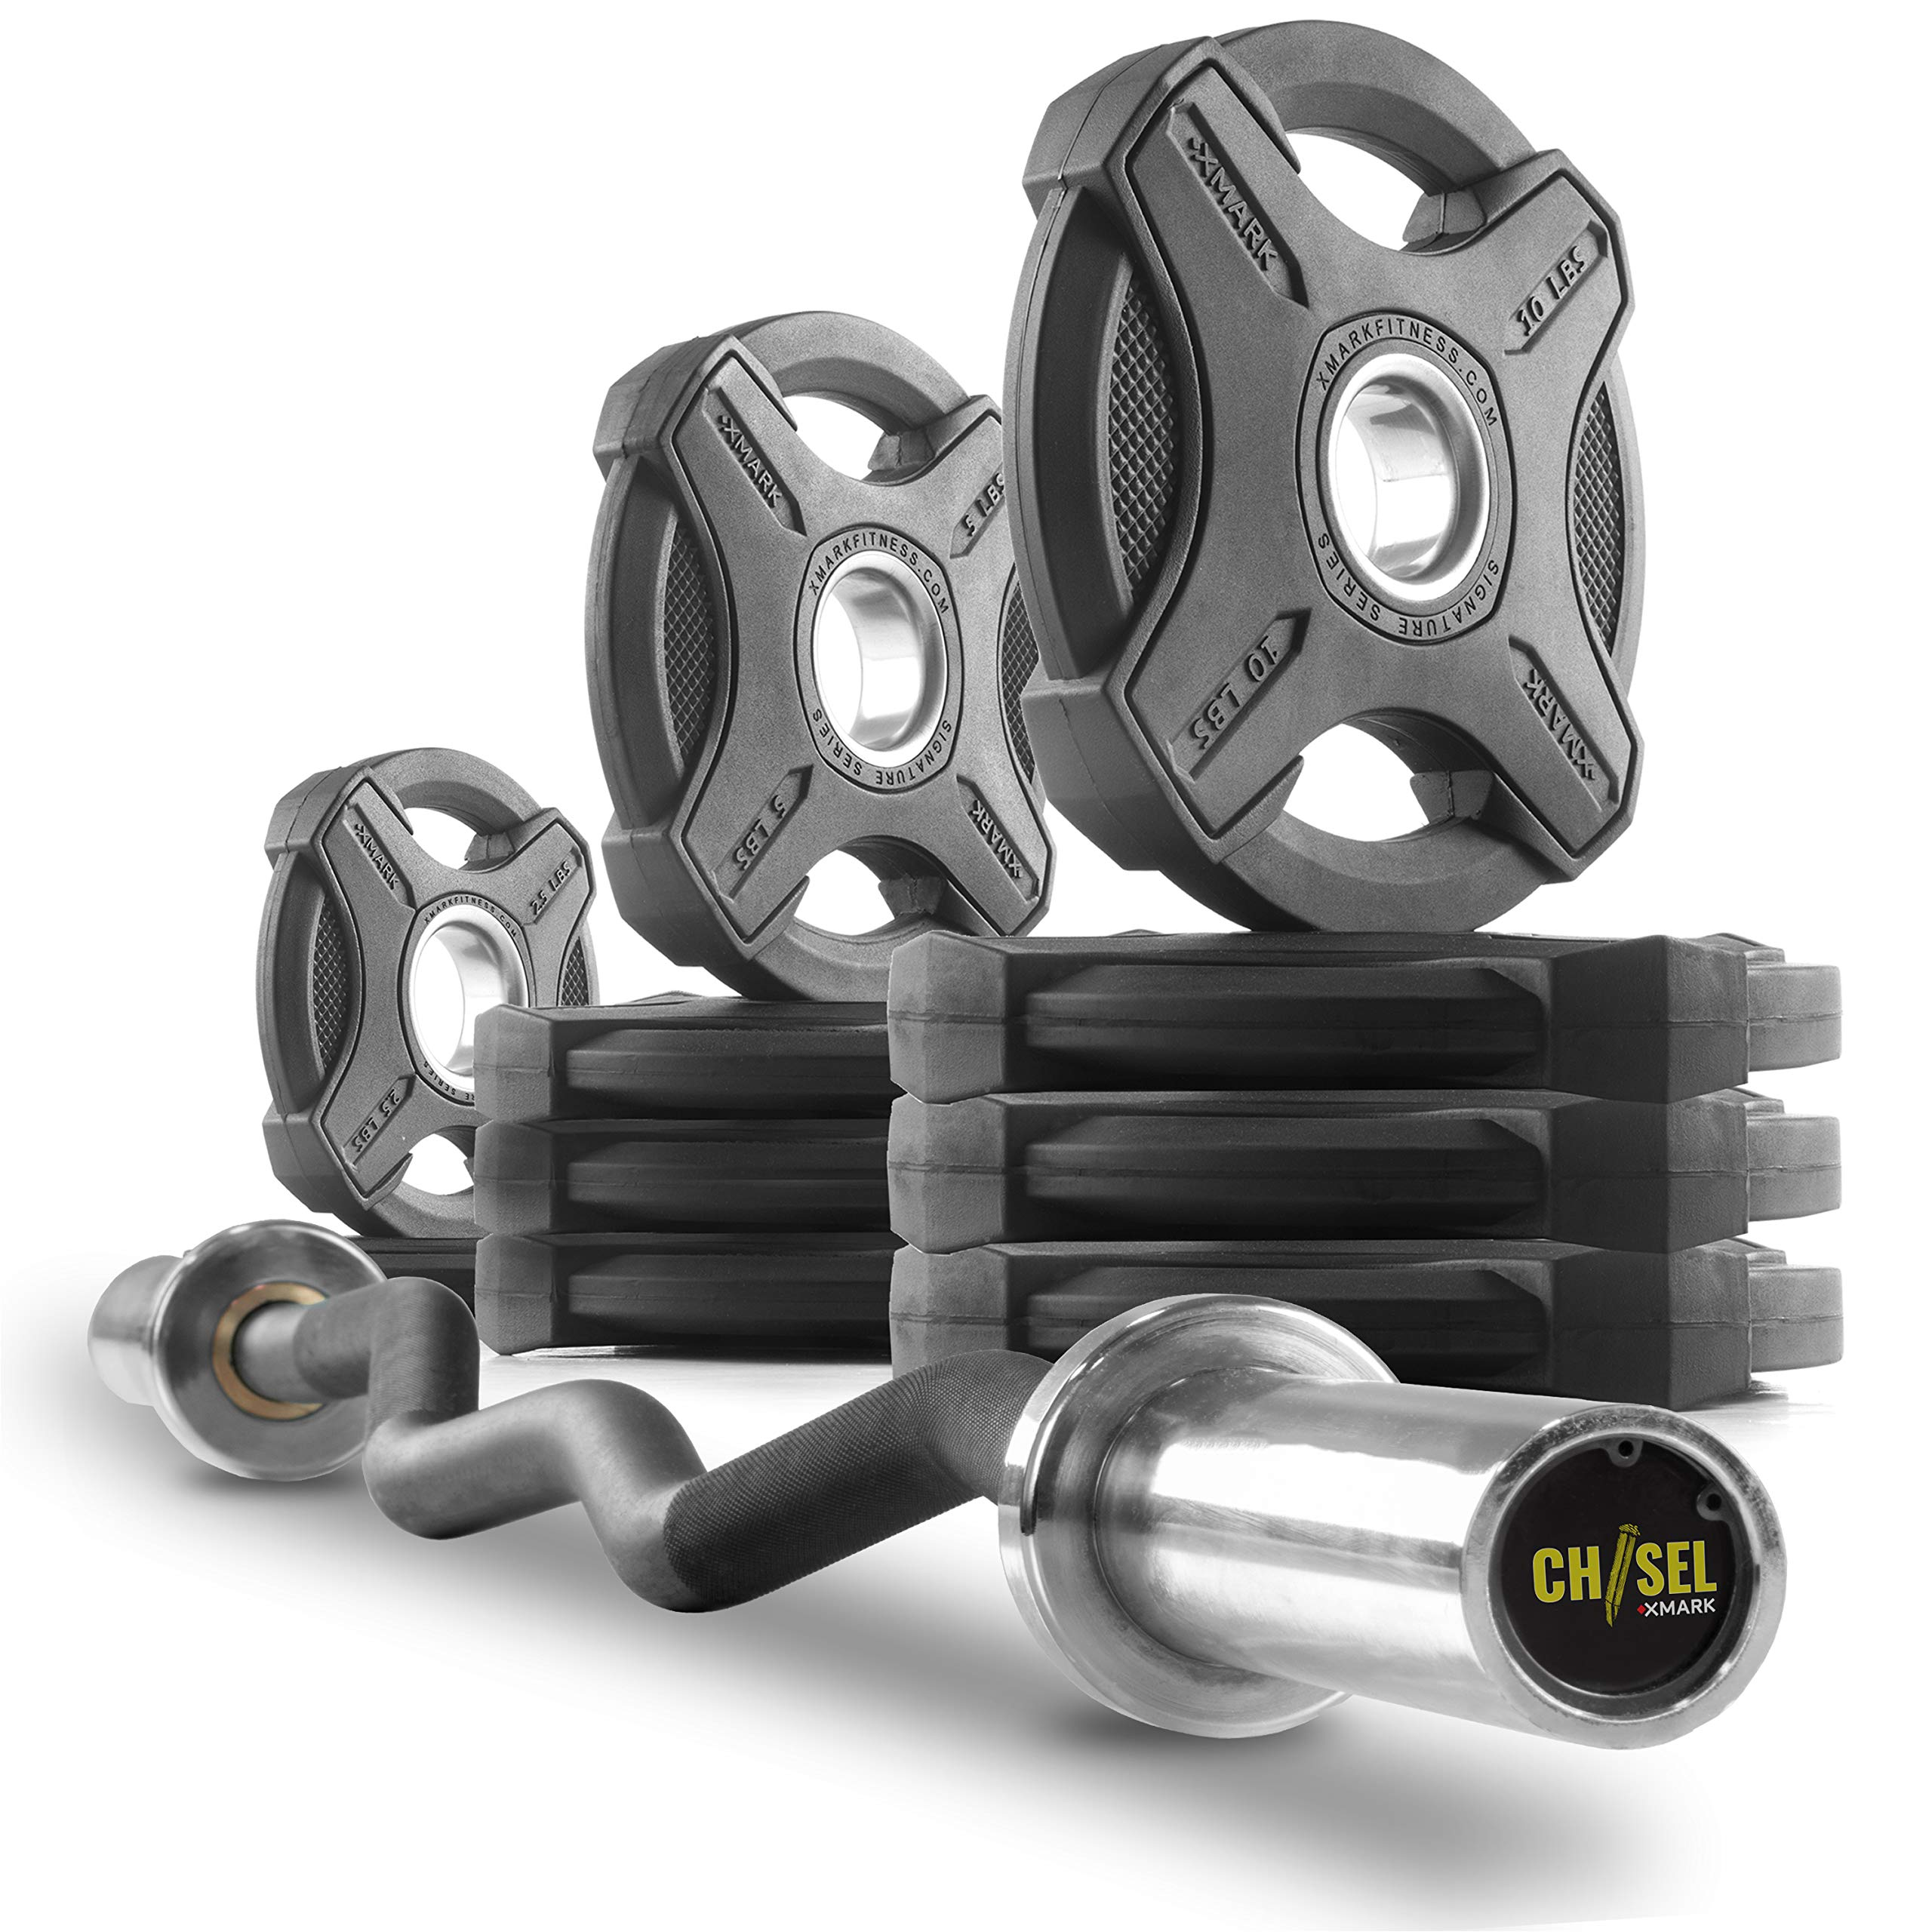 XMark Chisel Olympic Curl Bar with Signature 65 lb. Olympic Plate Weight Set, Notable Quality, Impressive Design, and Impeccable Craftsmanship